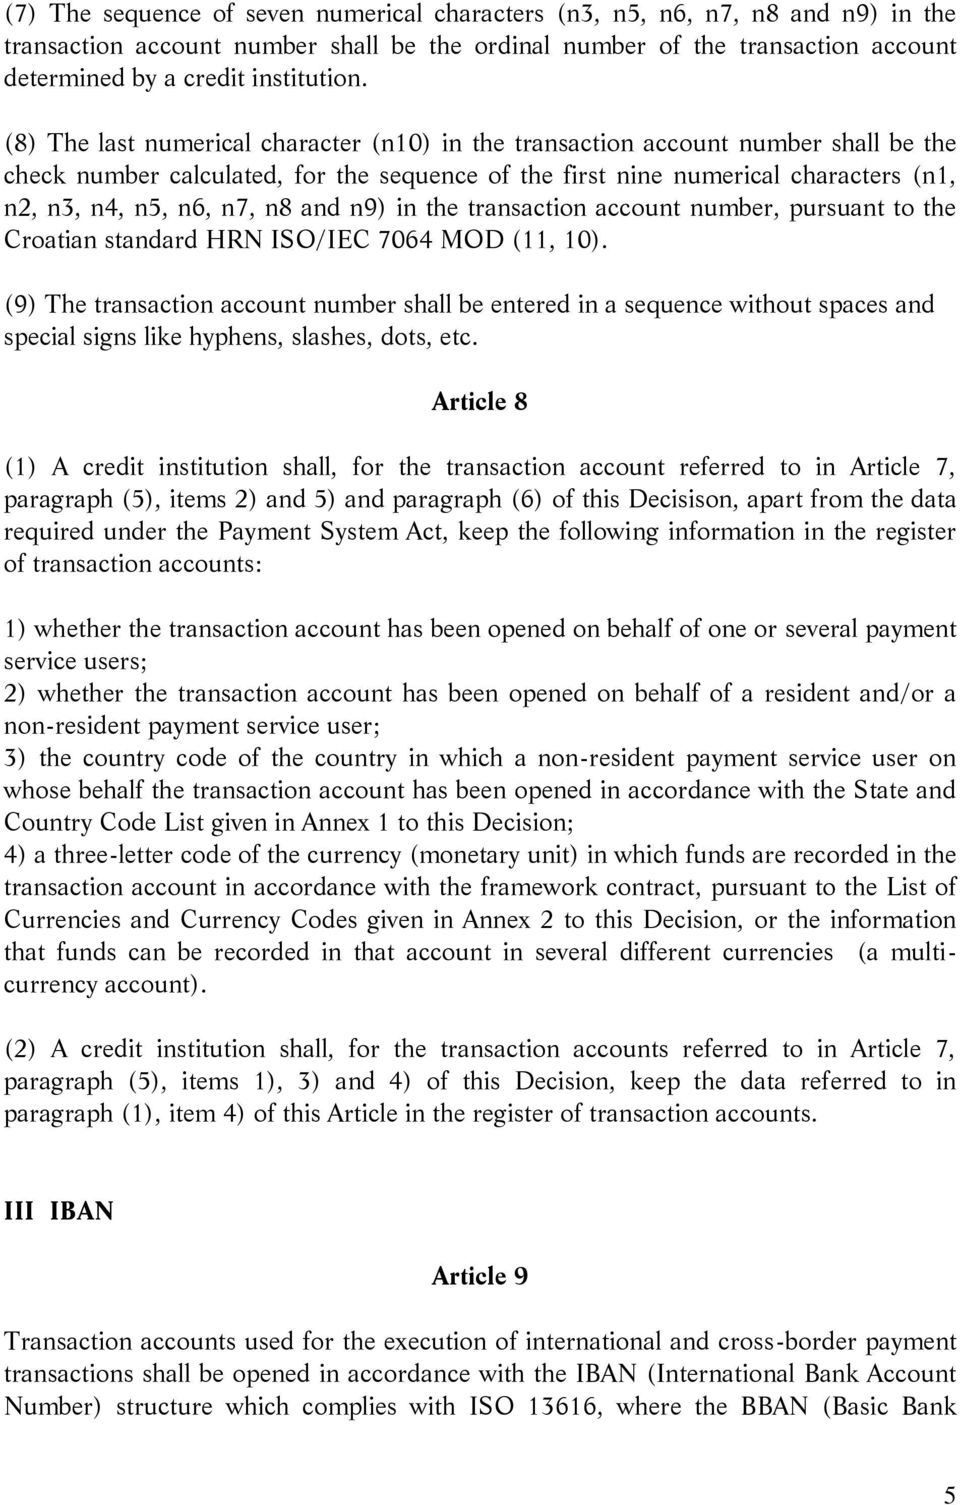 and n9) in the transaction account number, pursuant to the Croatian standard HRN ISO/IEC 7064 MOD (11, 10).